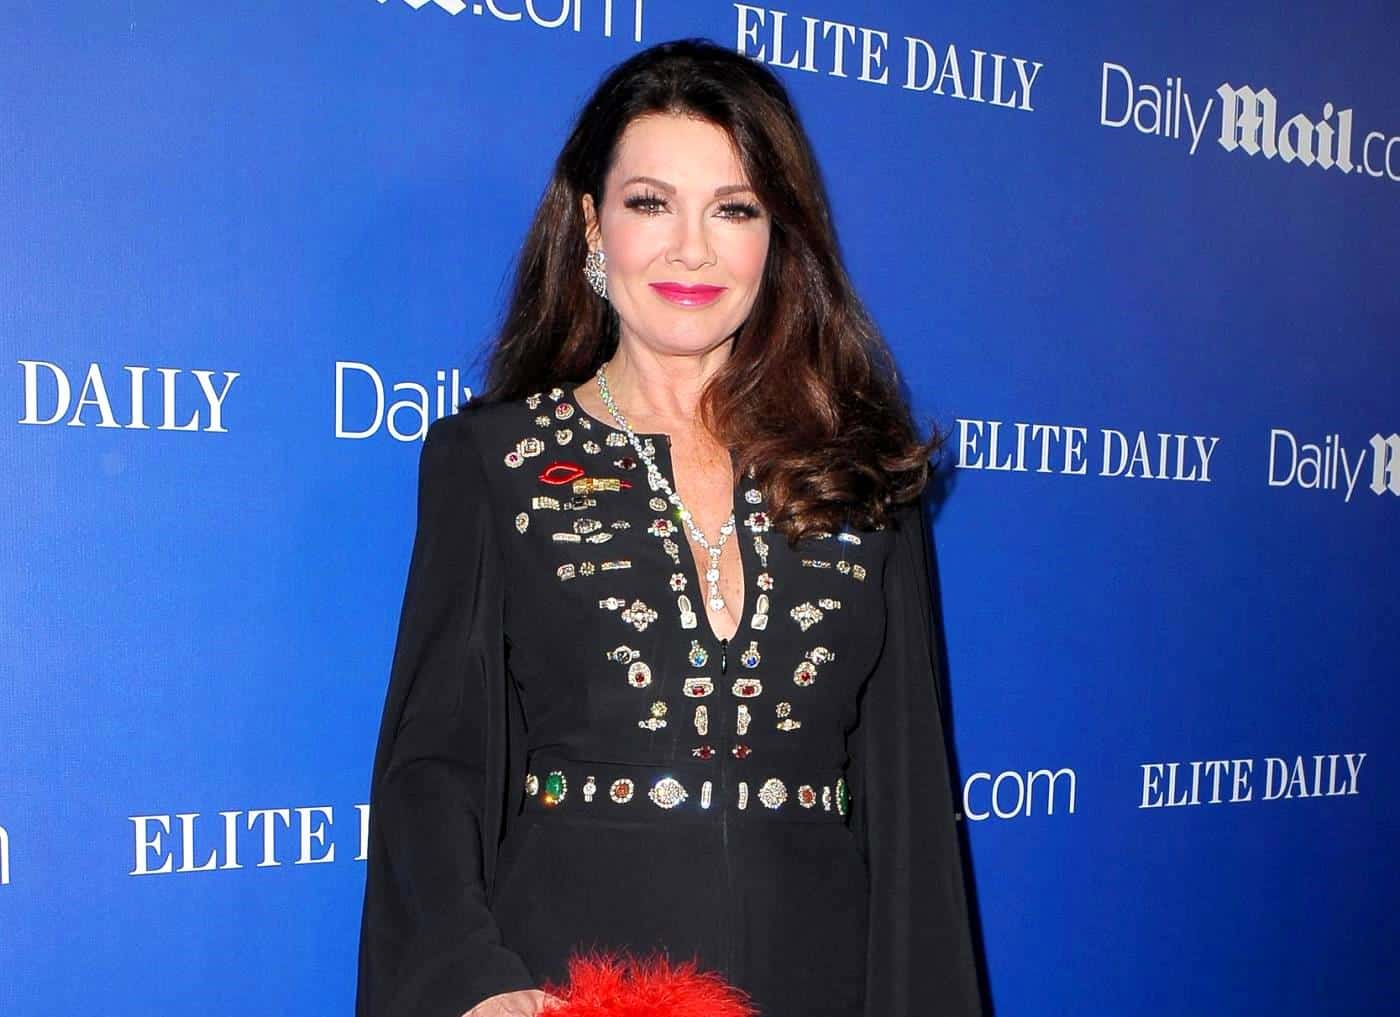 Lisa Vanderpump a New Spinoff Show for Bravo